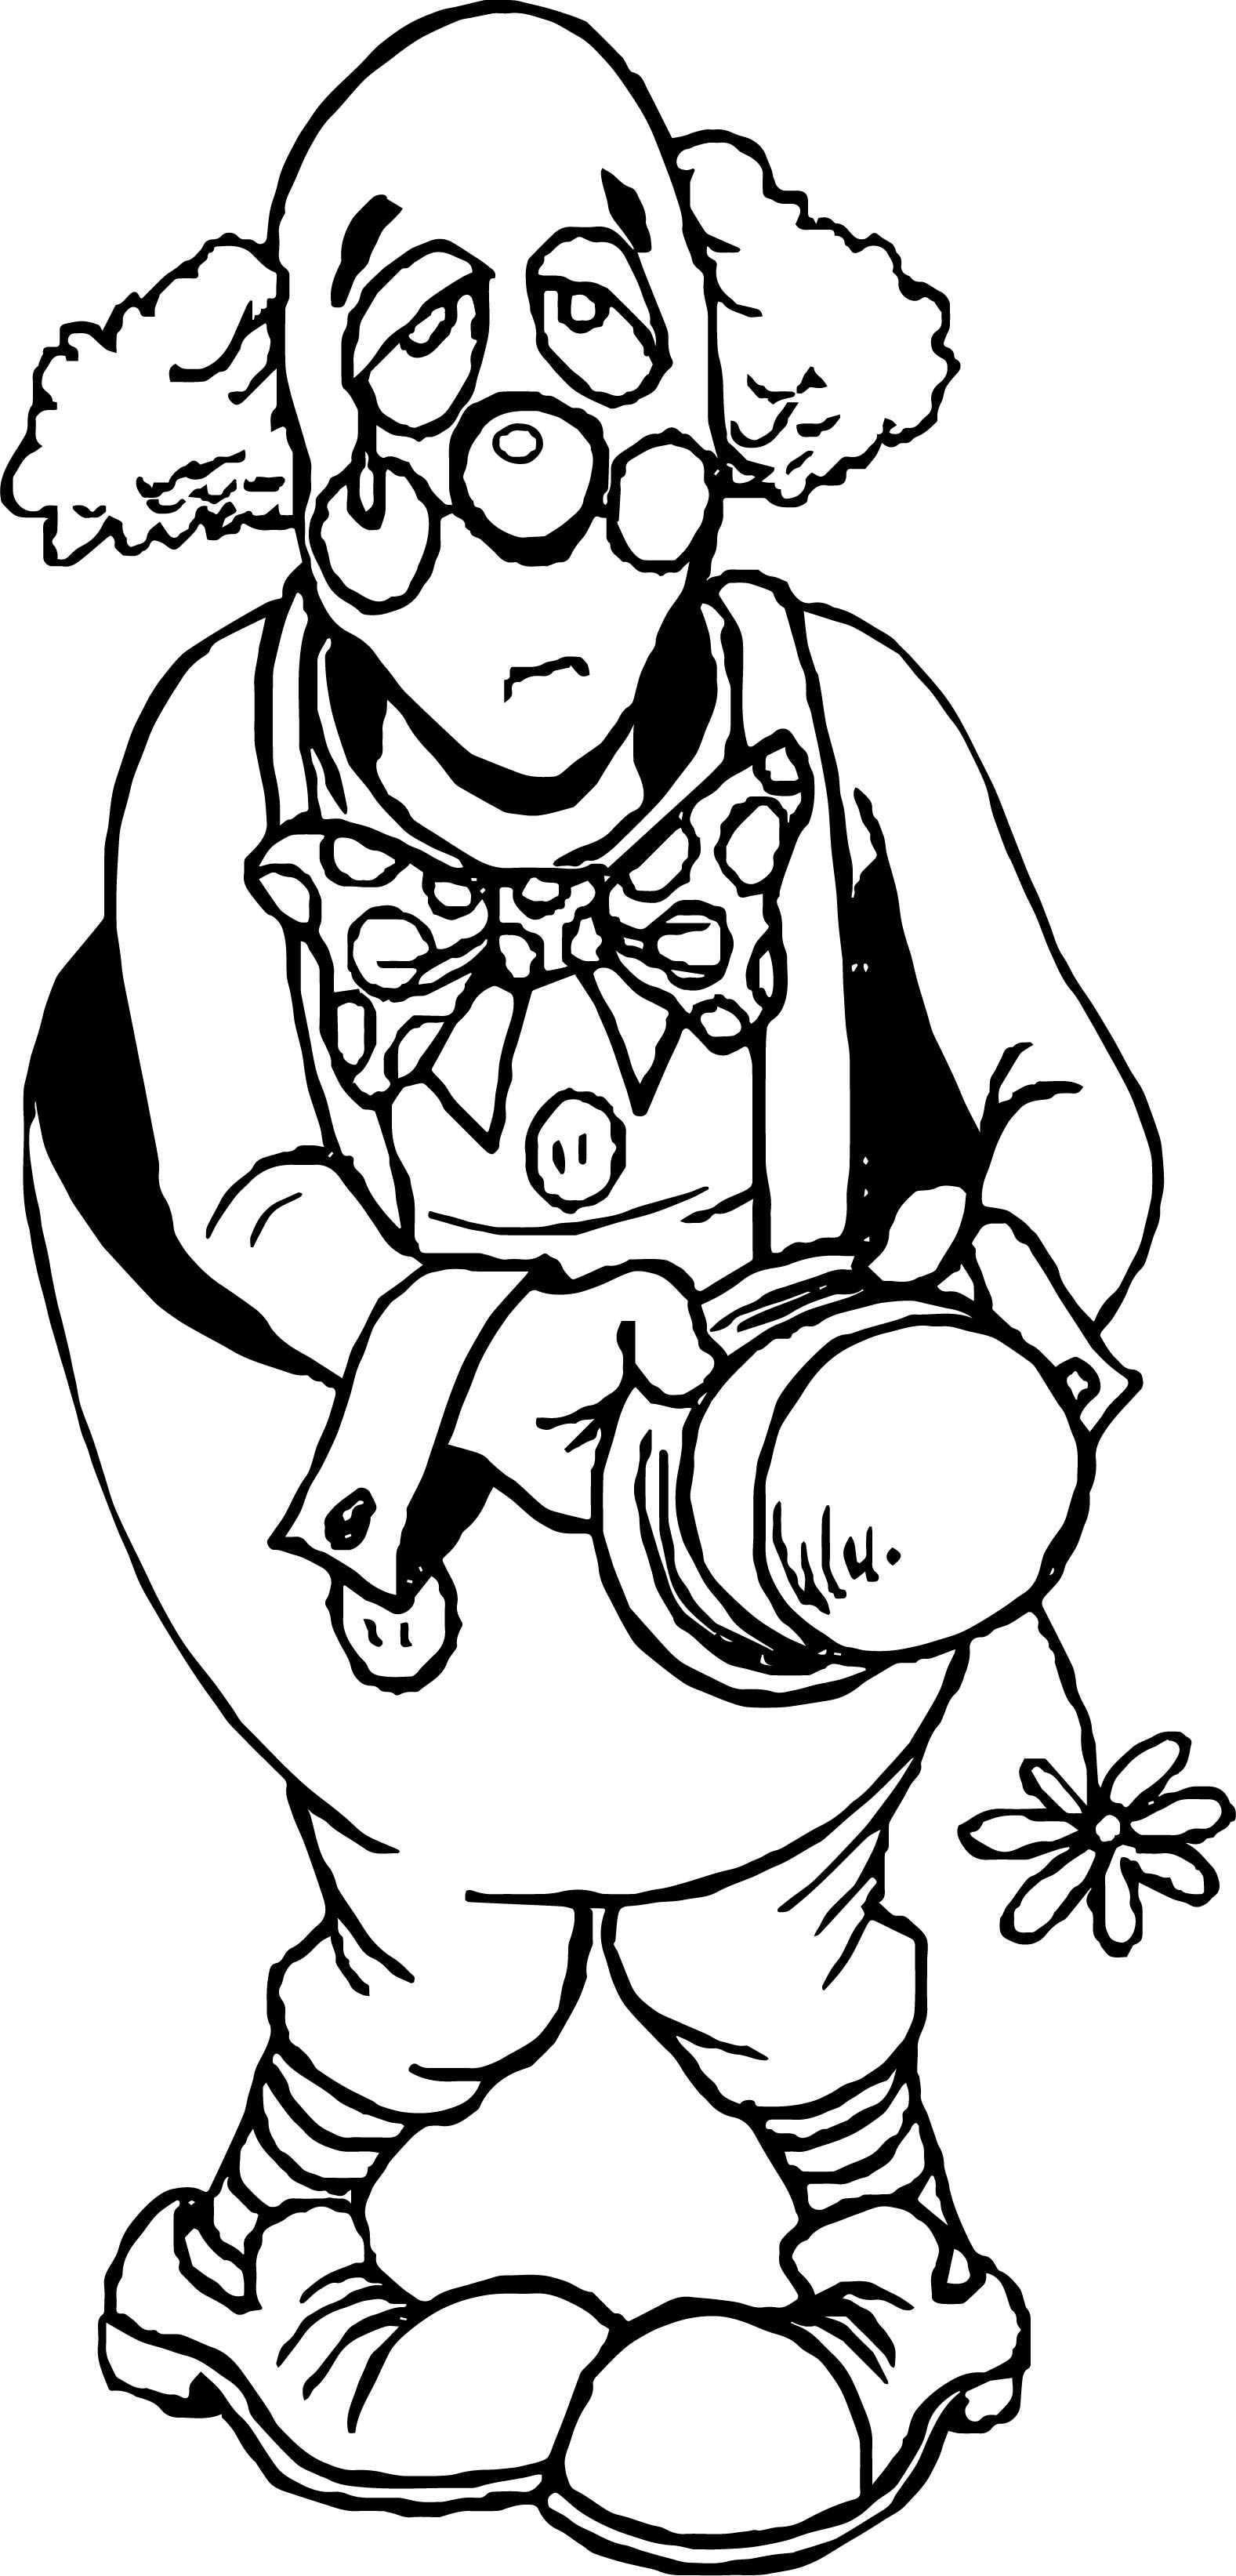 Clown Coloring Page WeColoringPage 011